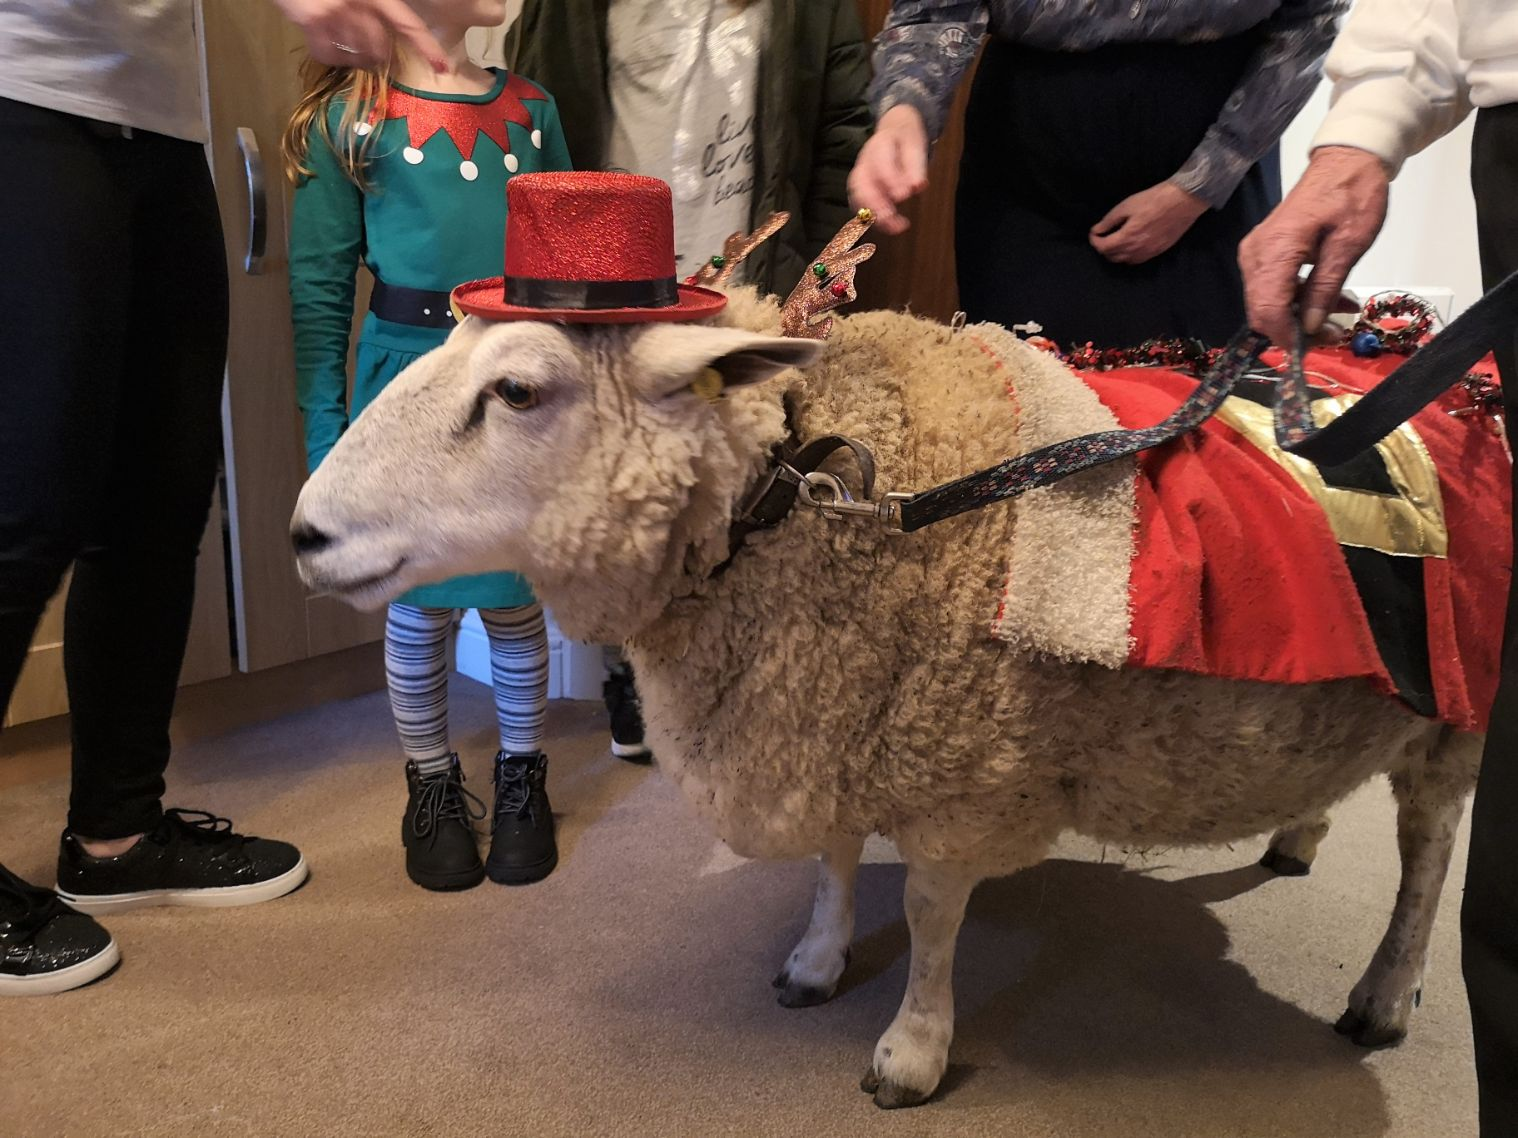 Kingston Care Home in Kingston-upon-Thames have a visit from Amy the sheep